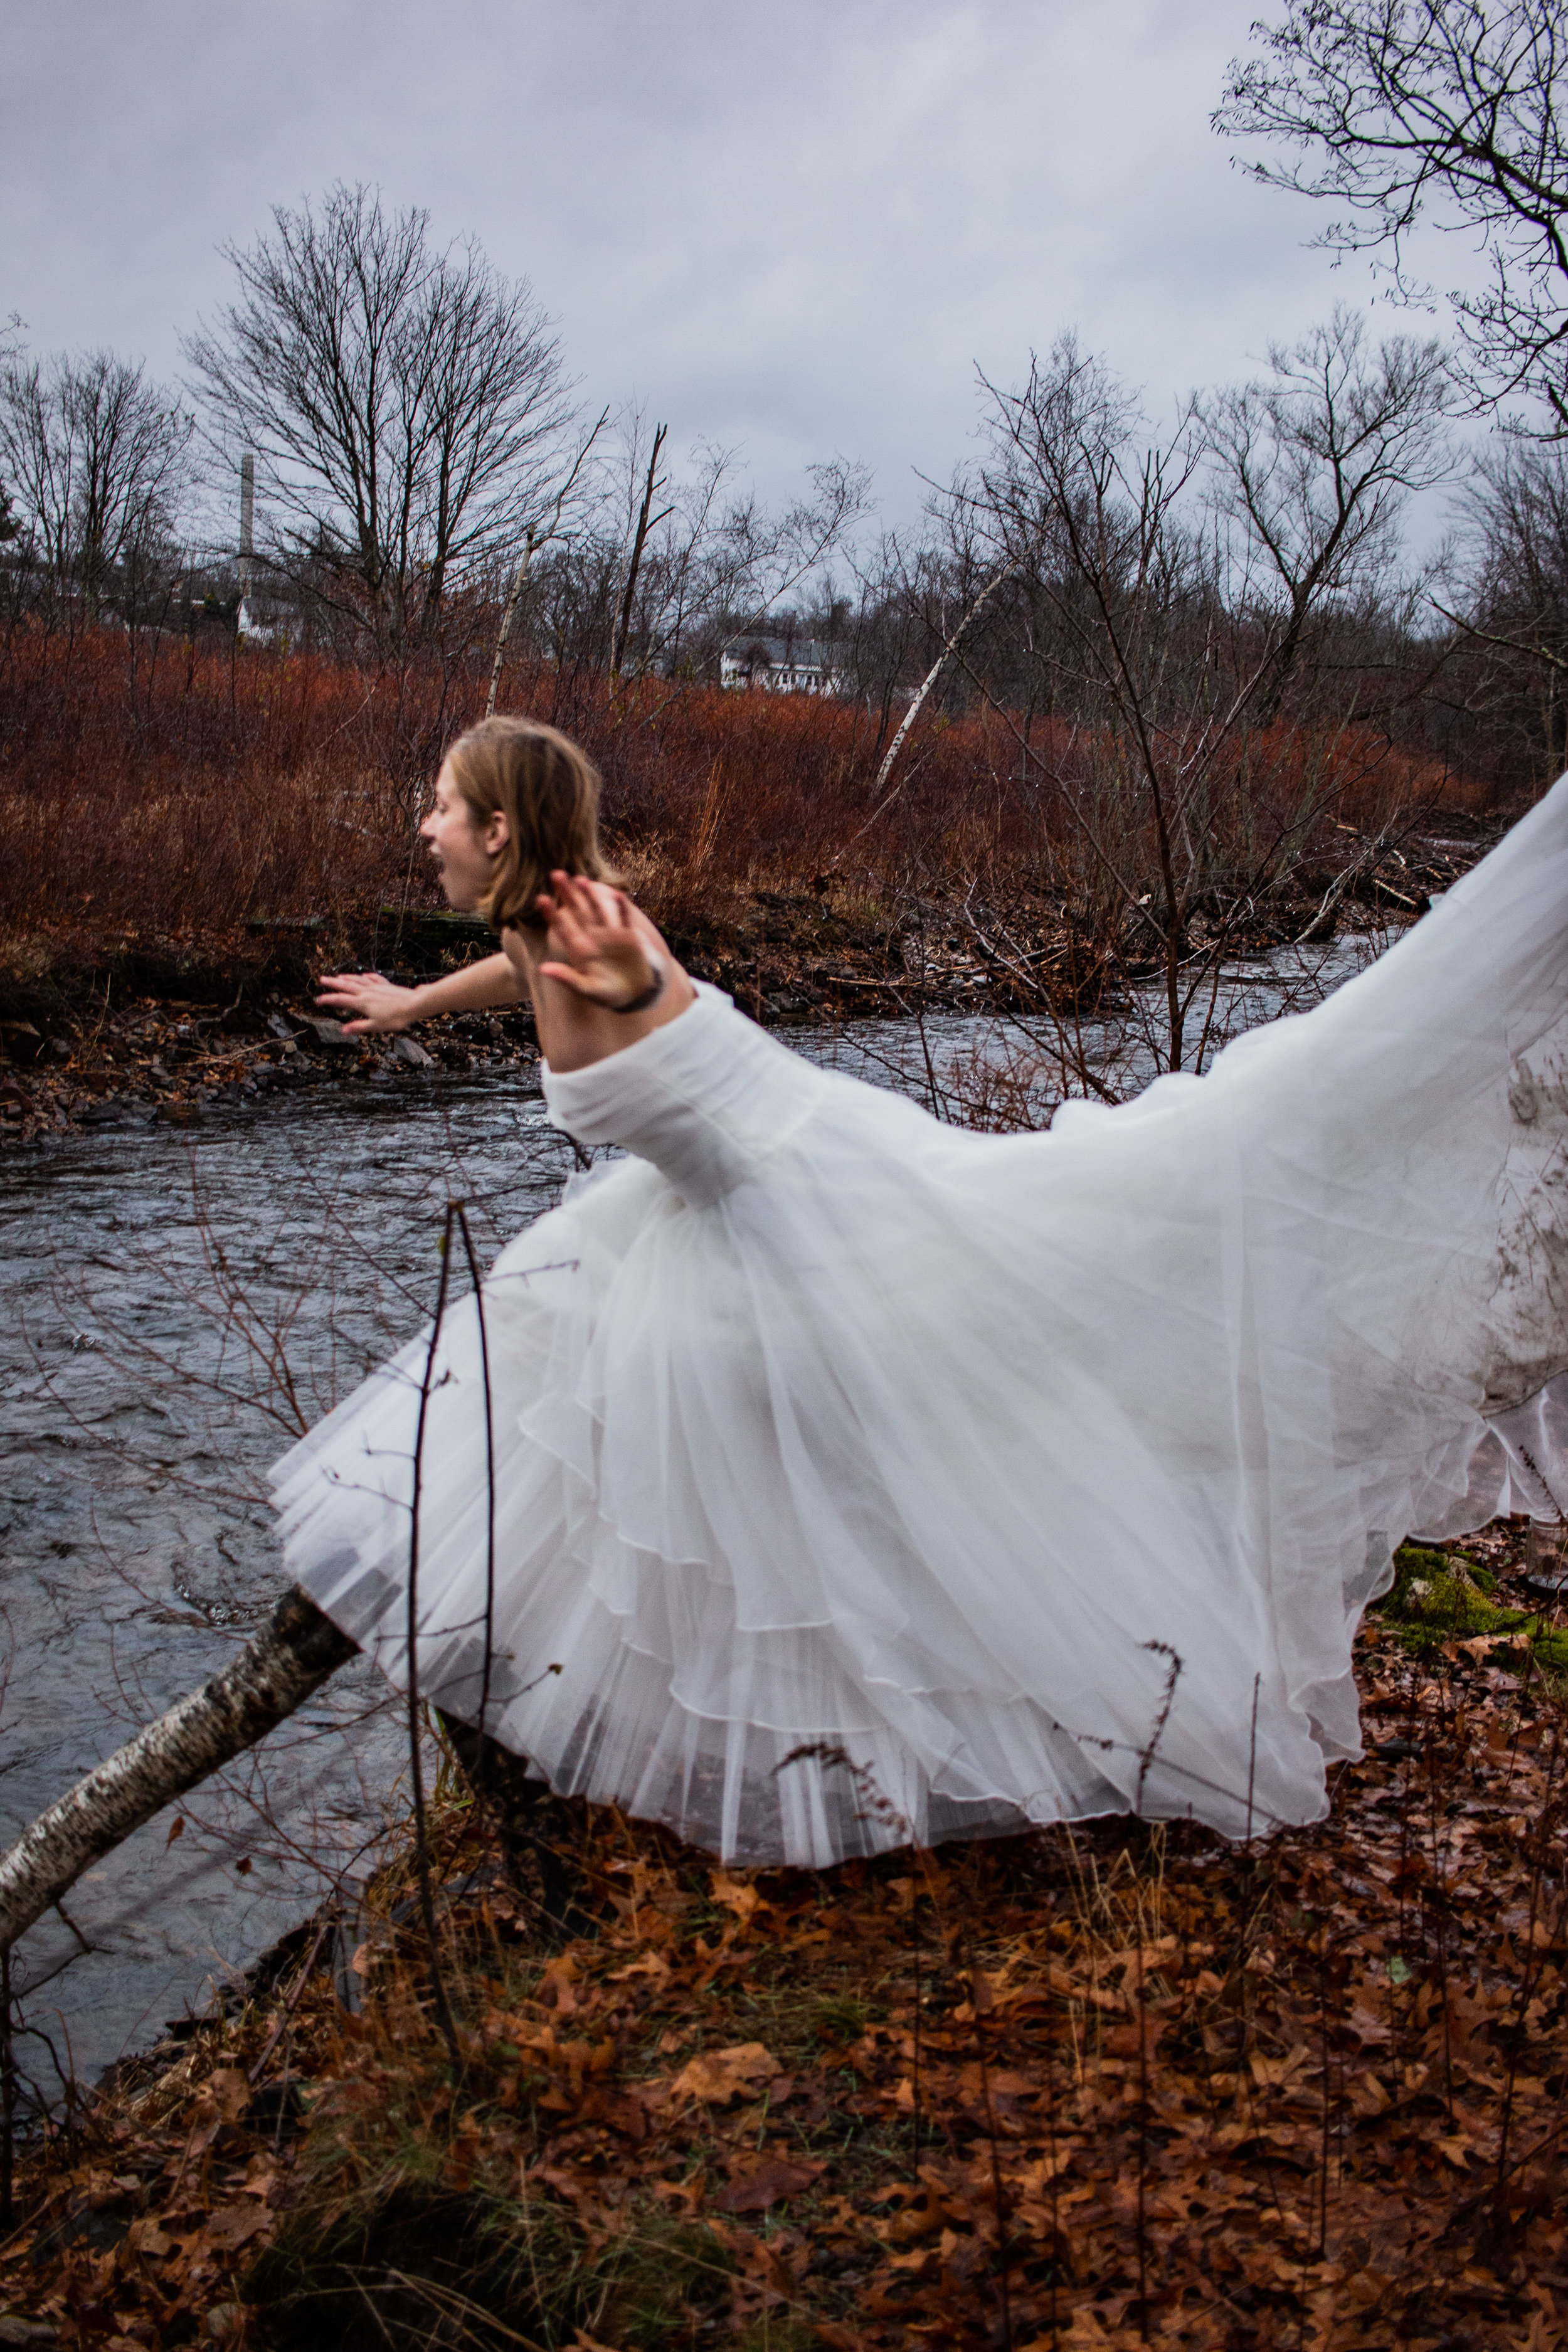 20181126 Natalie TrashTheDress (13).jpg